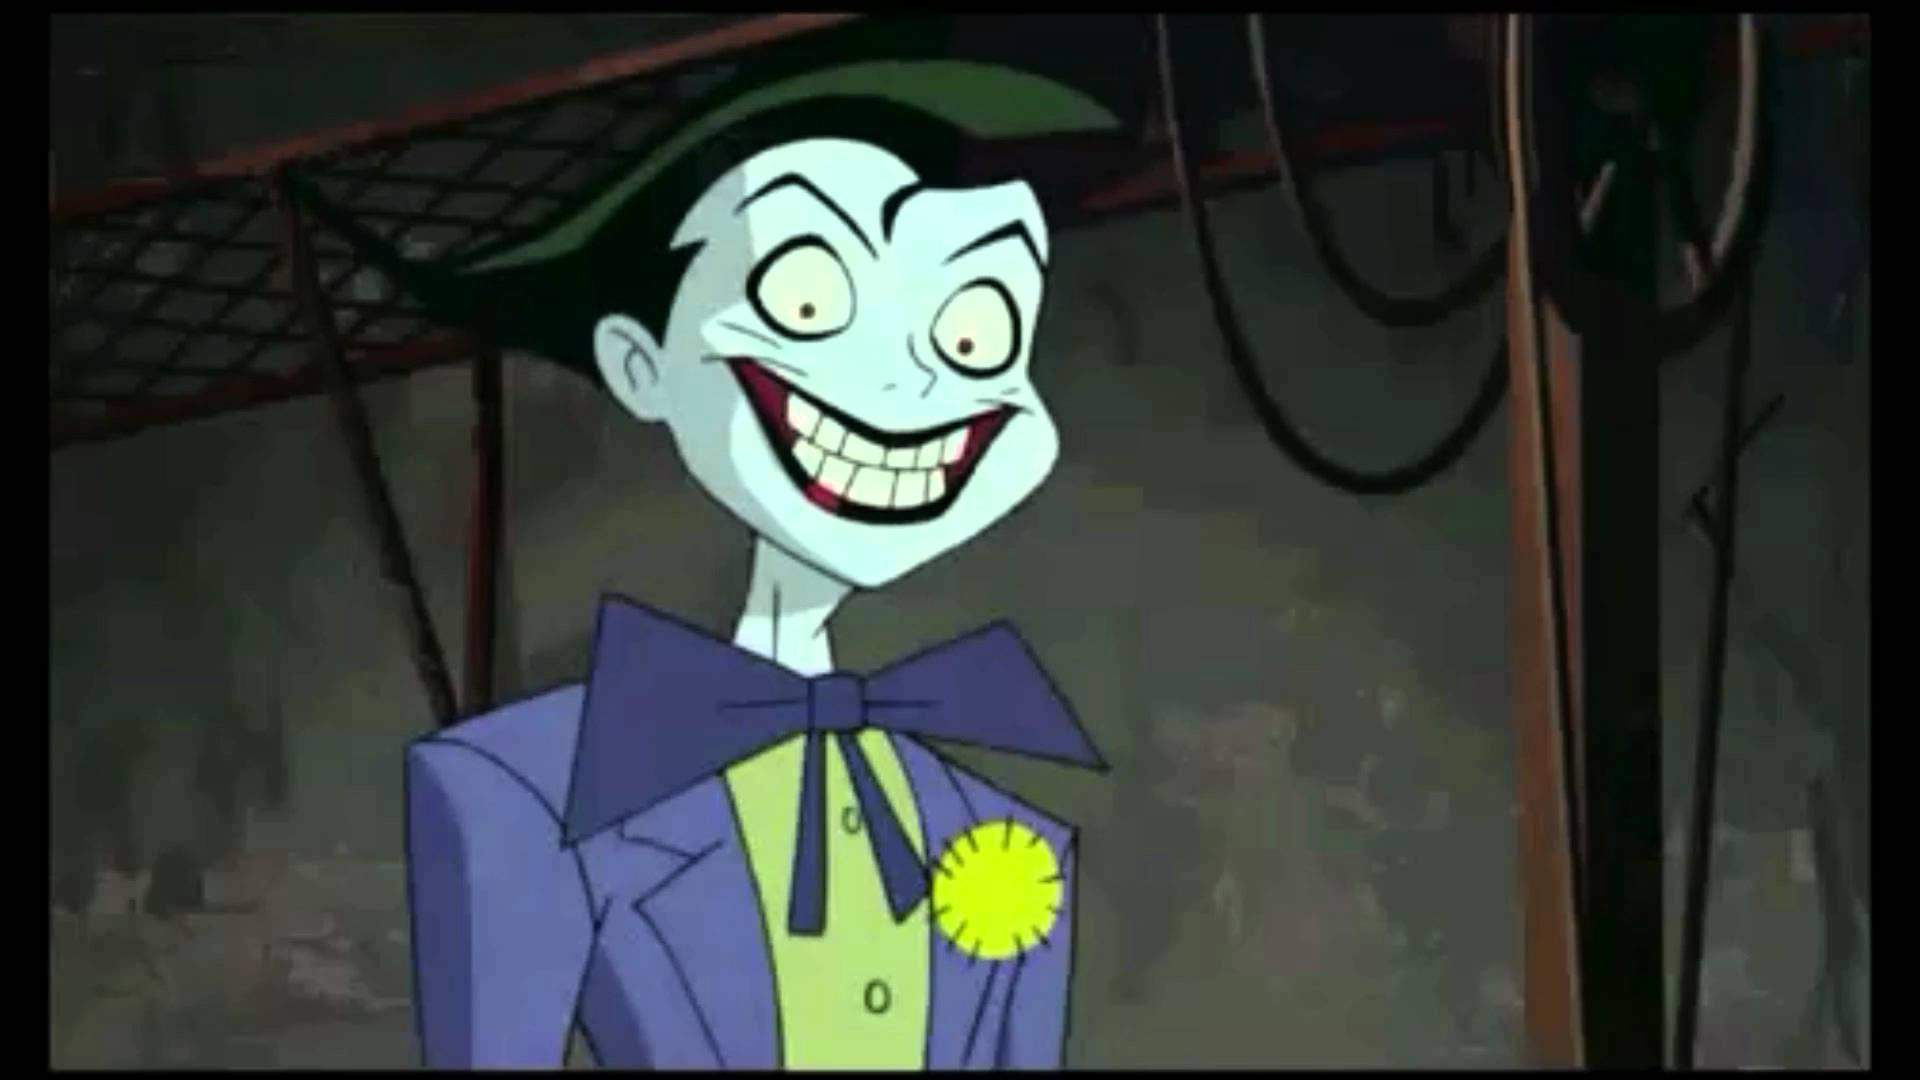 The Joker use to be a Robin?